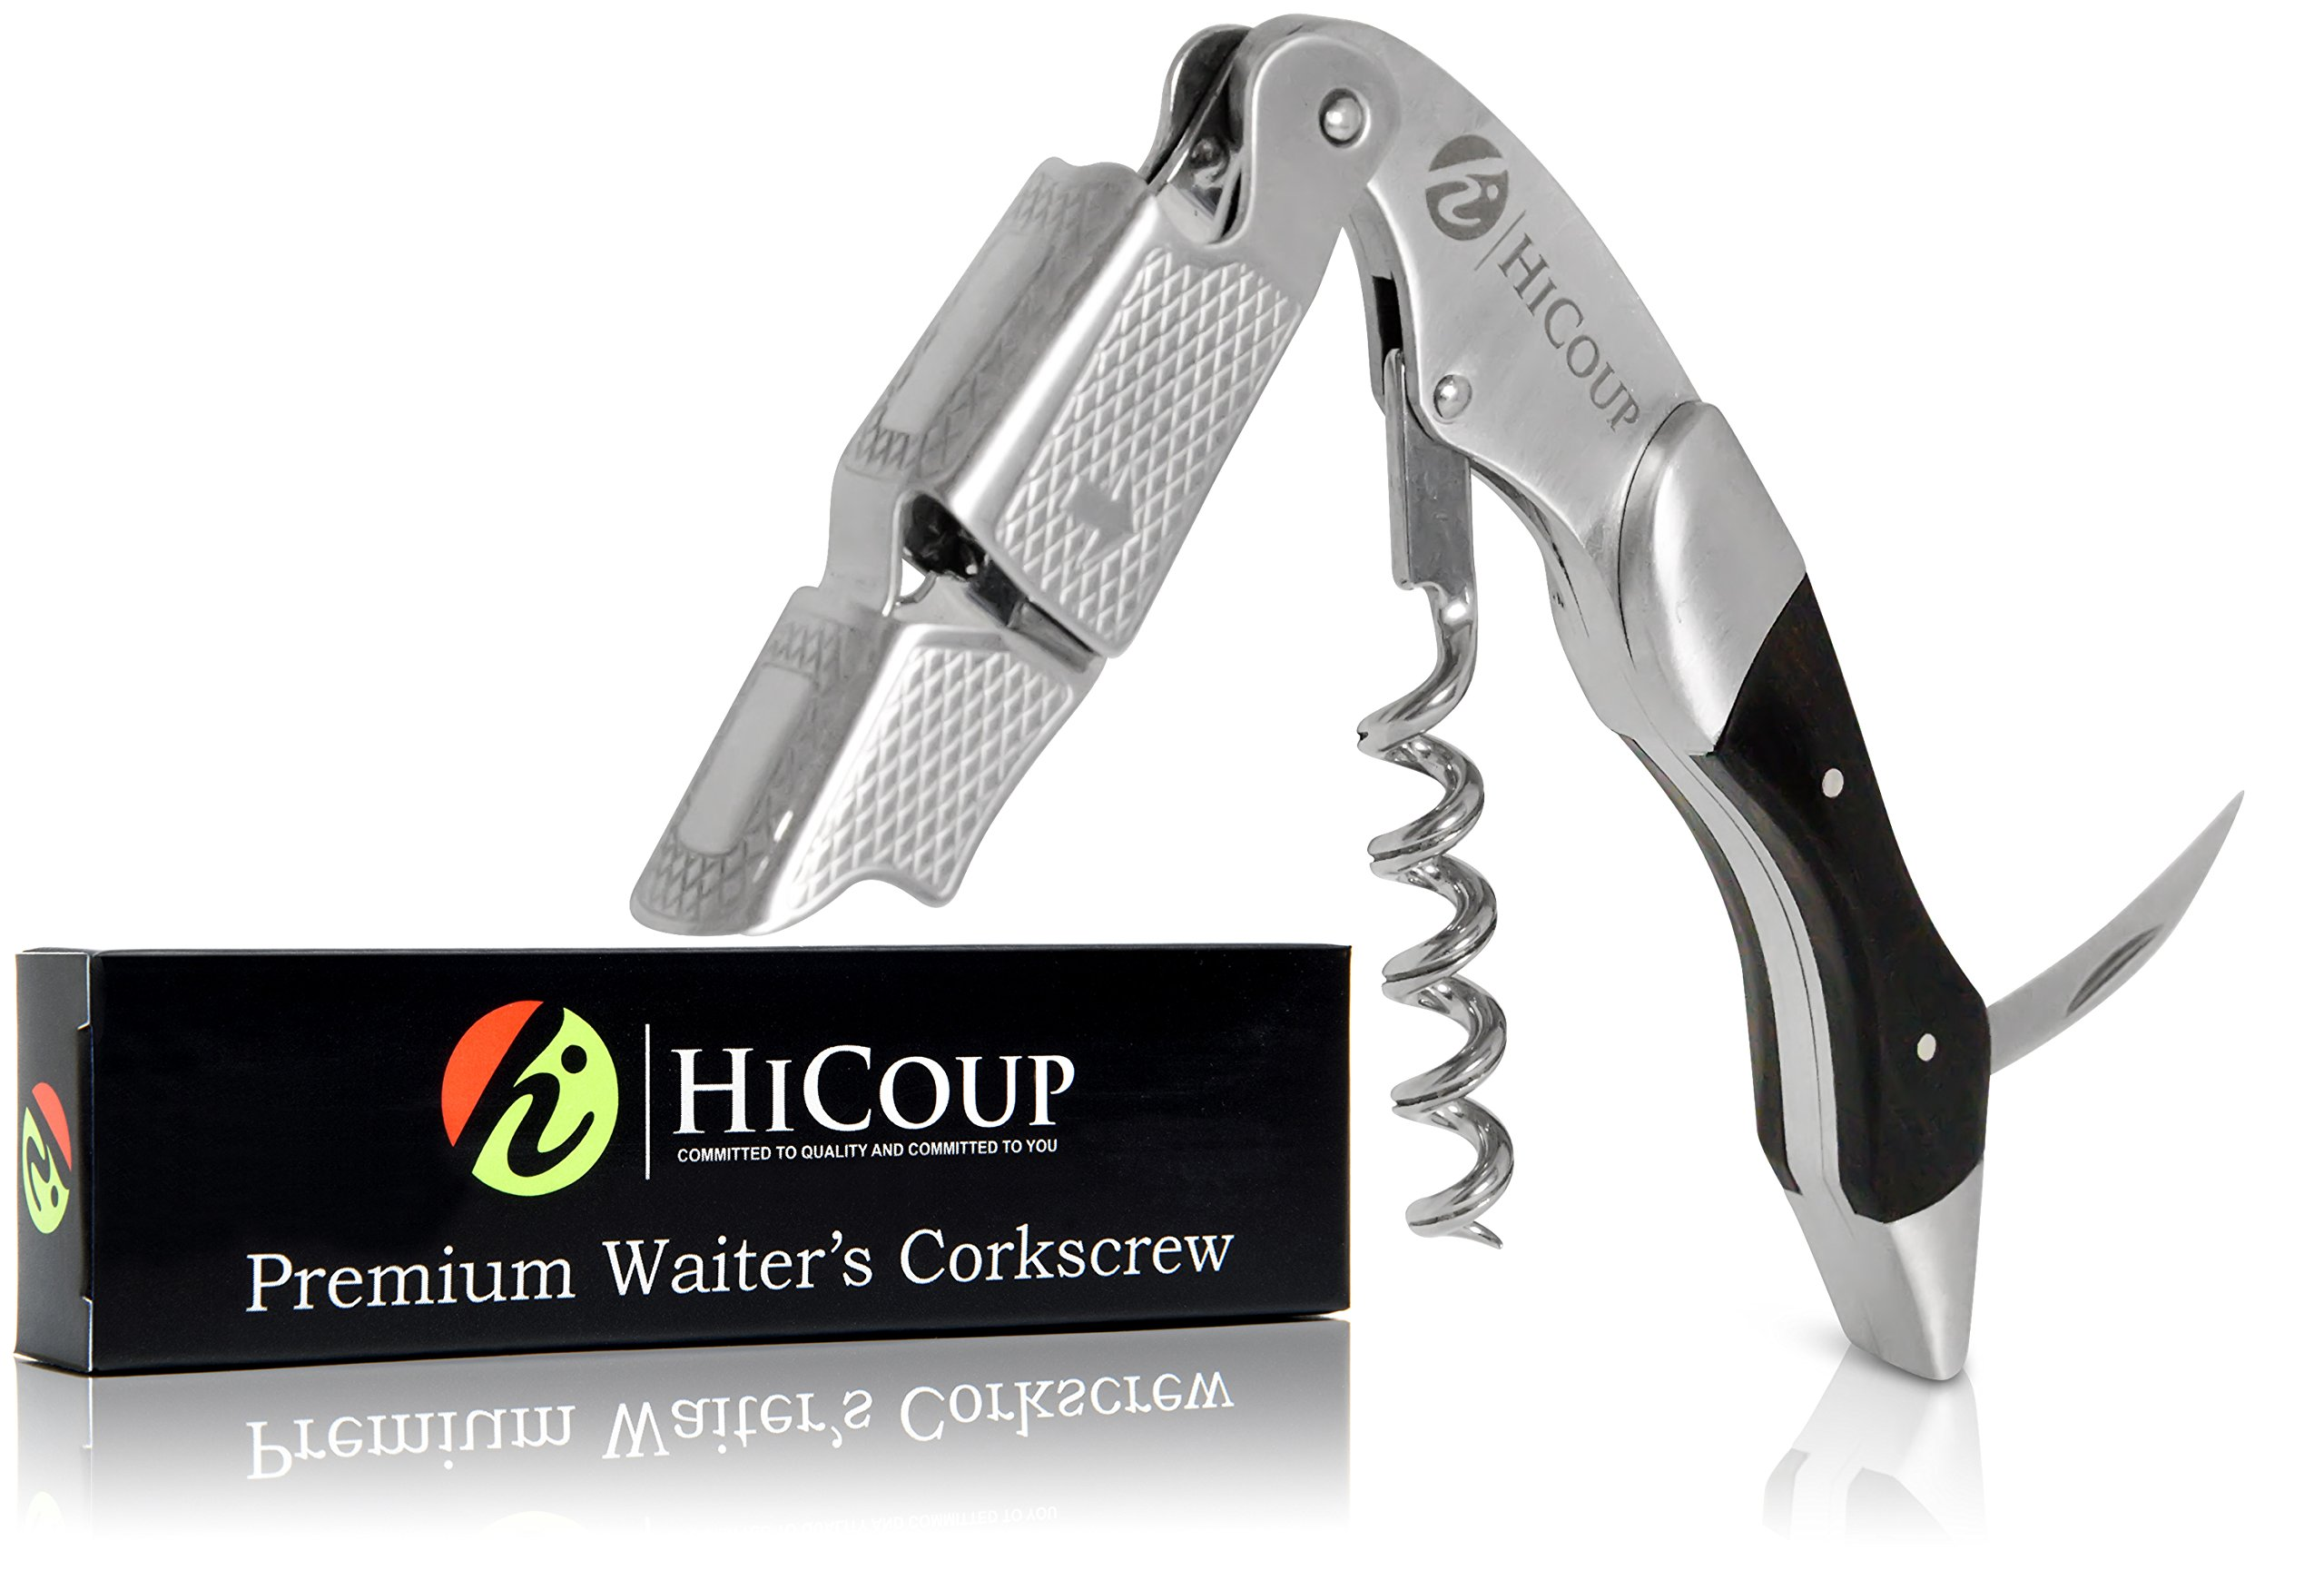 Waiters Corkscrew by HiCoup - Professional Stainless Steel with Ebony Wood Inlay All-in-one Corkscrew, Bottle Opener and Foil Cutter, The Favoured Wine Opener of Sommeliers, Waiters and Bartenders